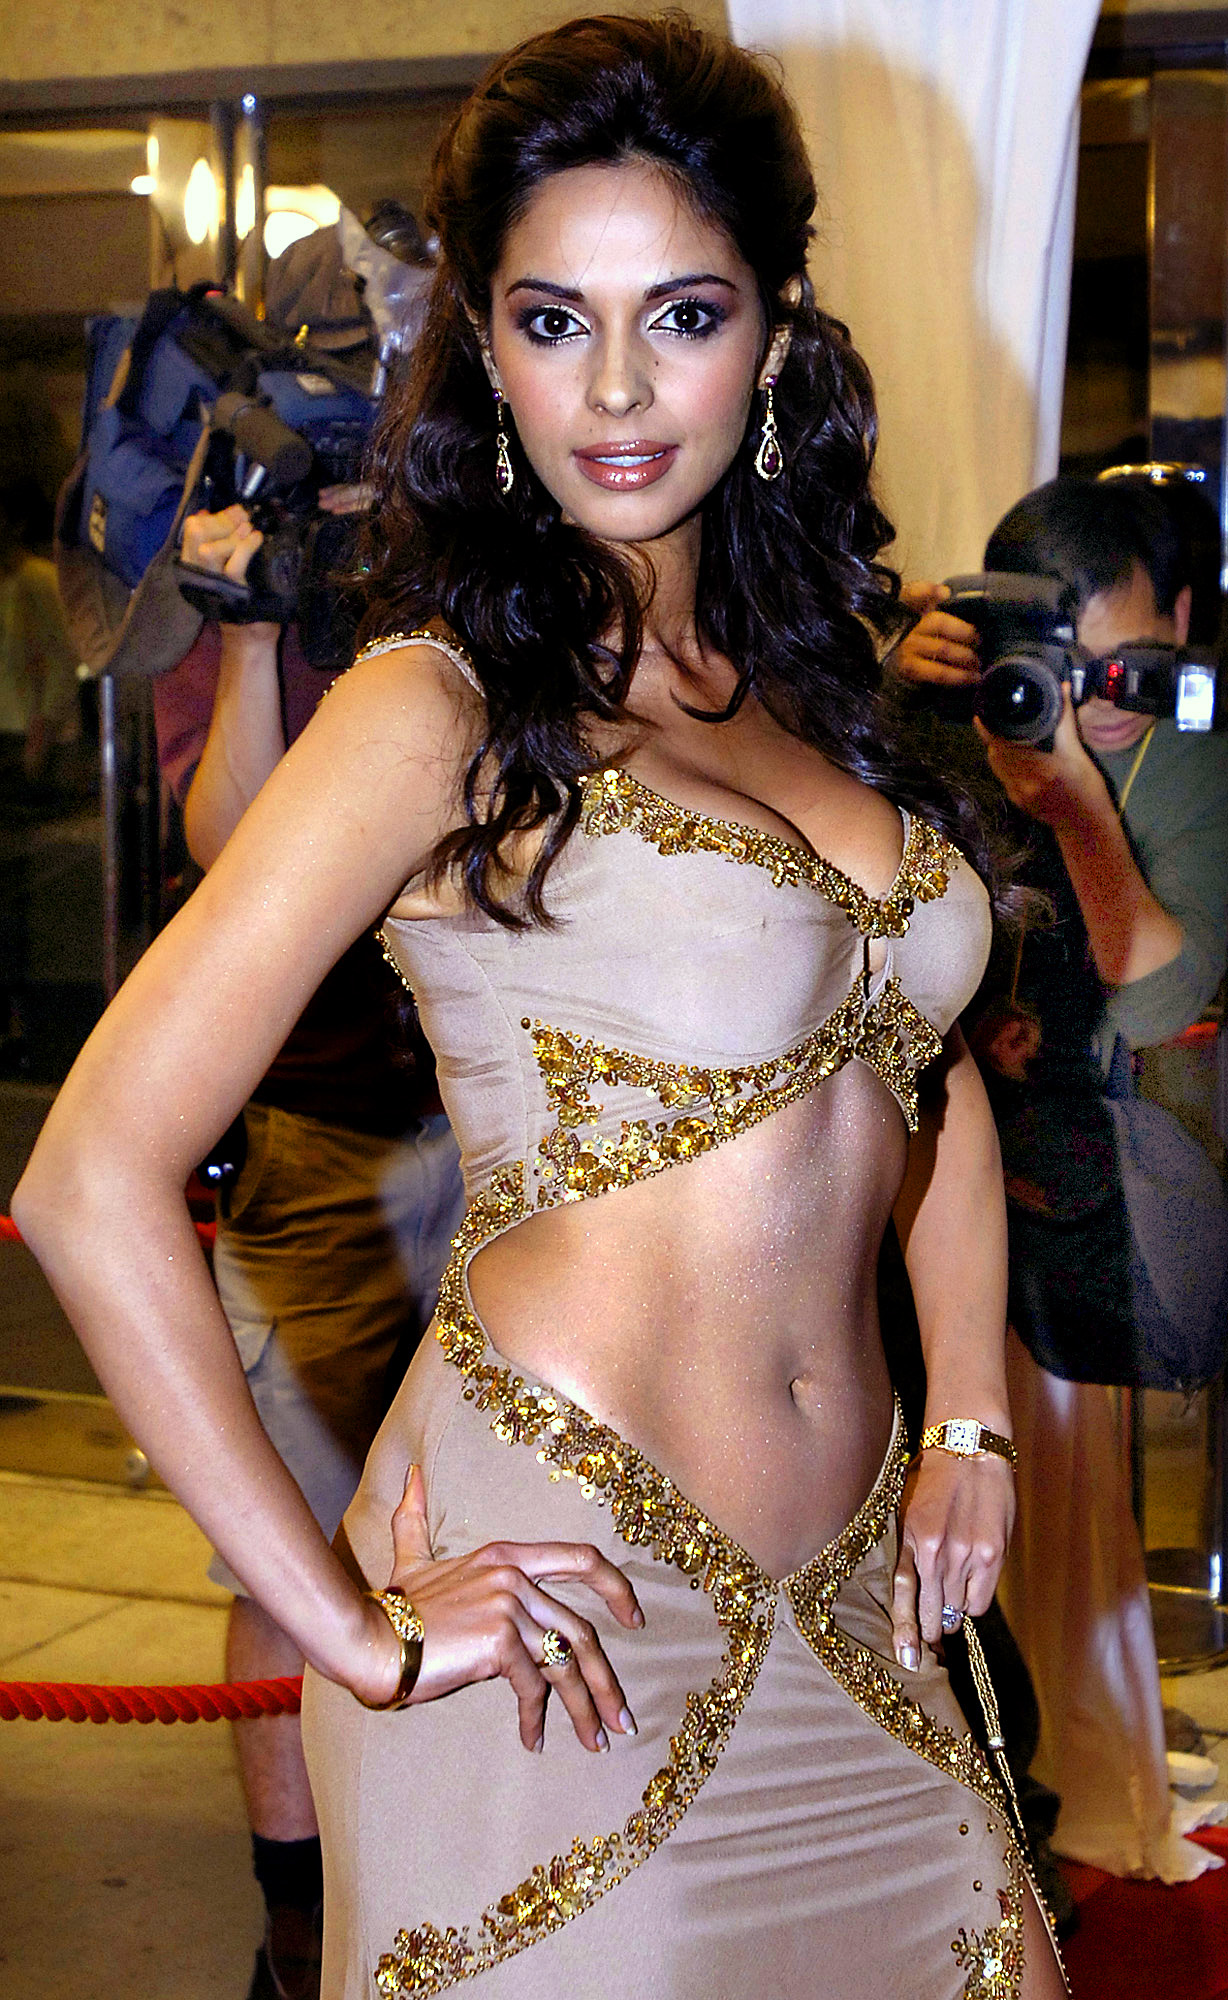 Scene mallika sherawat naked photo screams